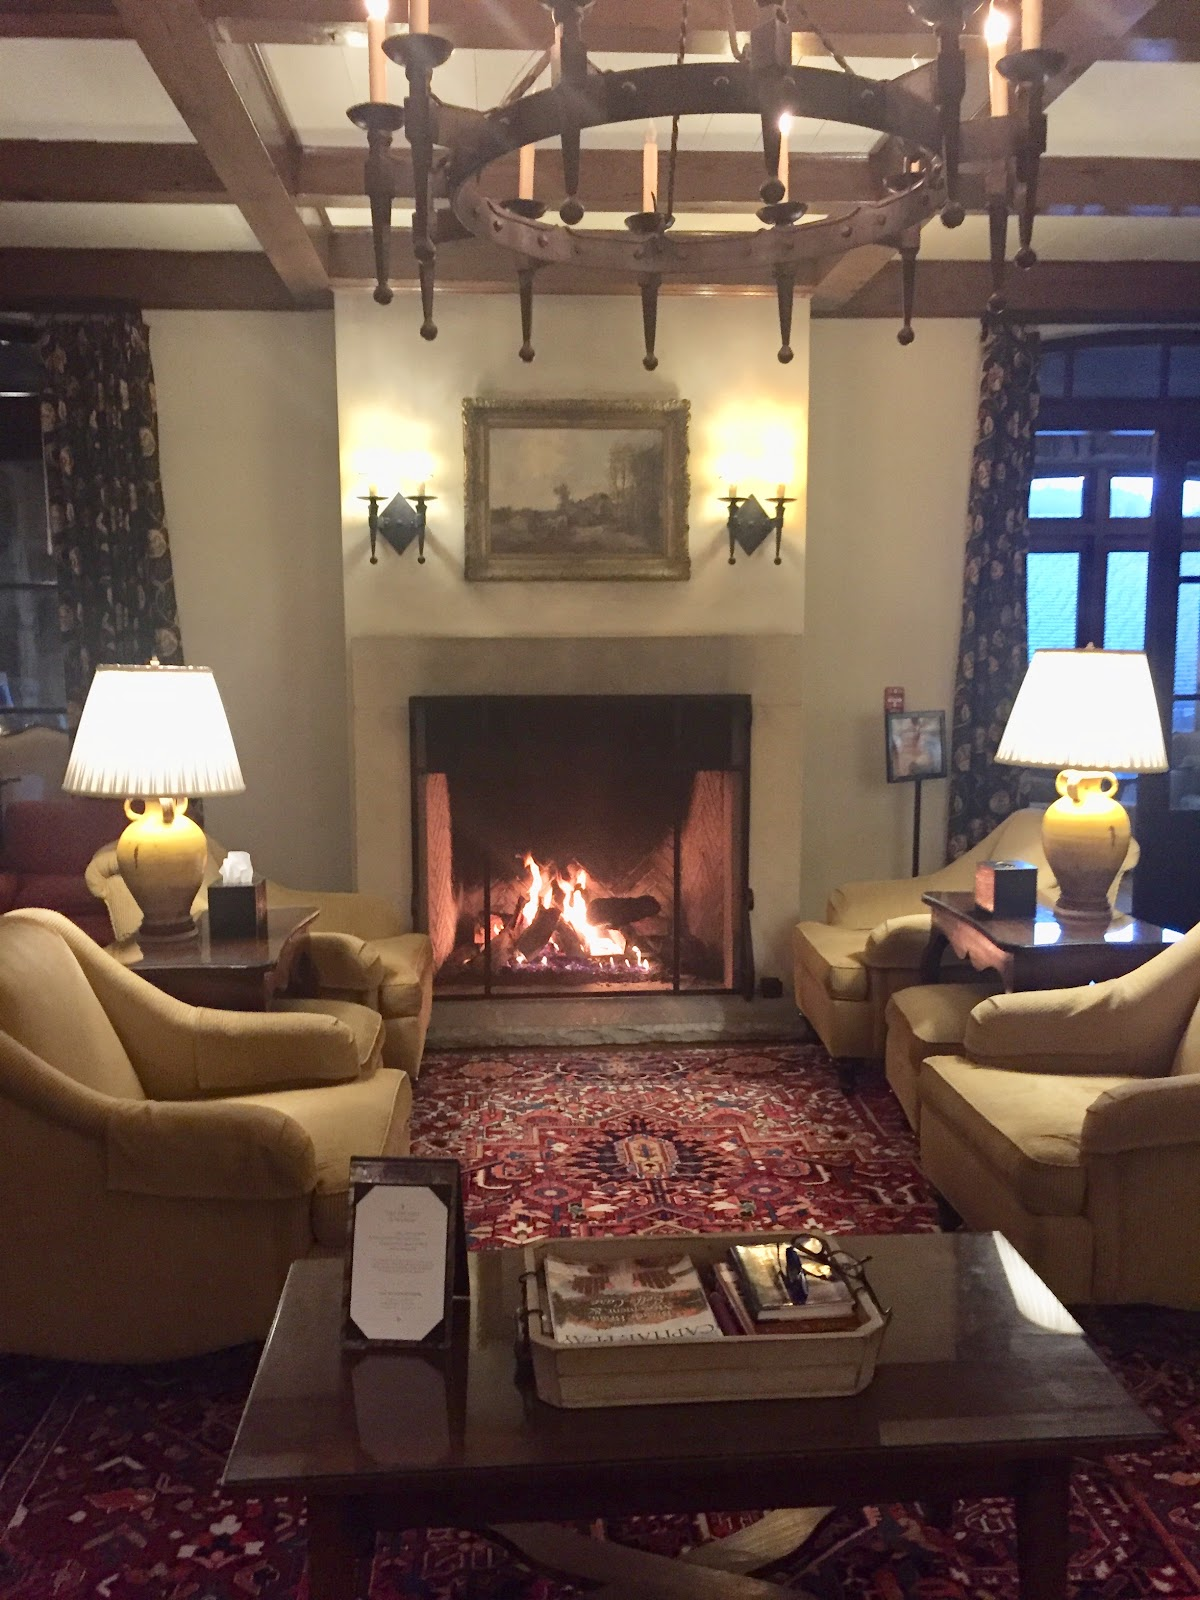 Fireplace Burning In Lobby